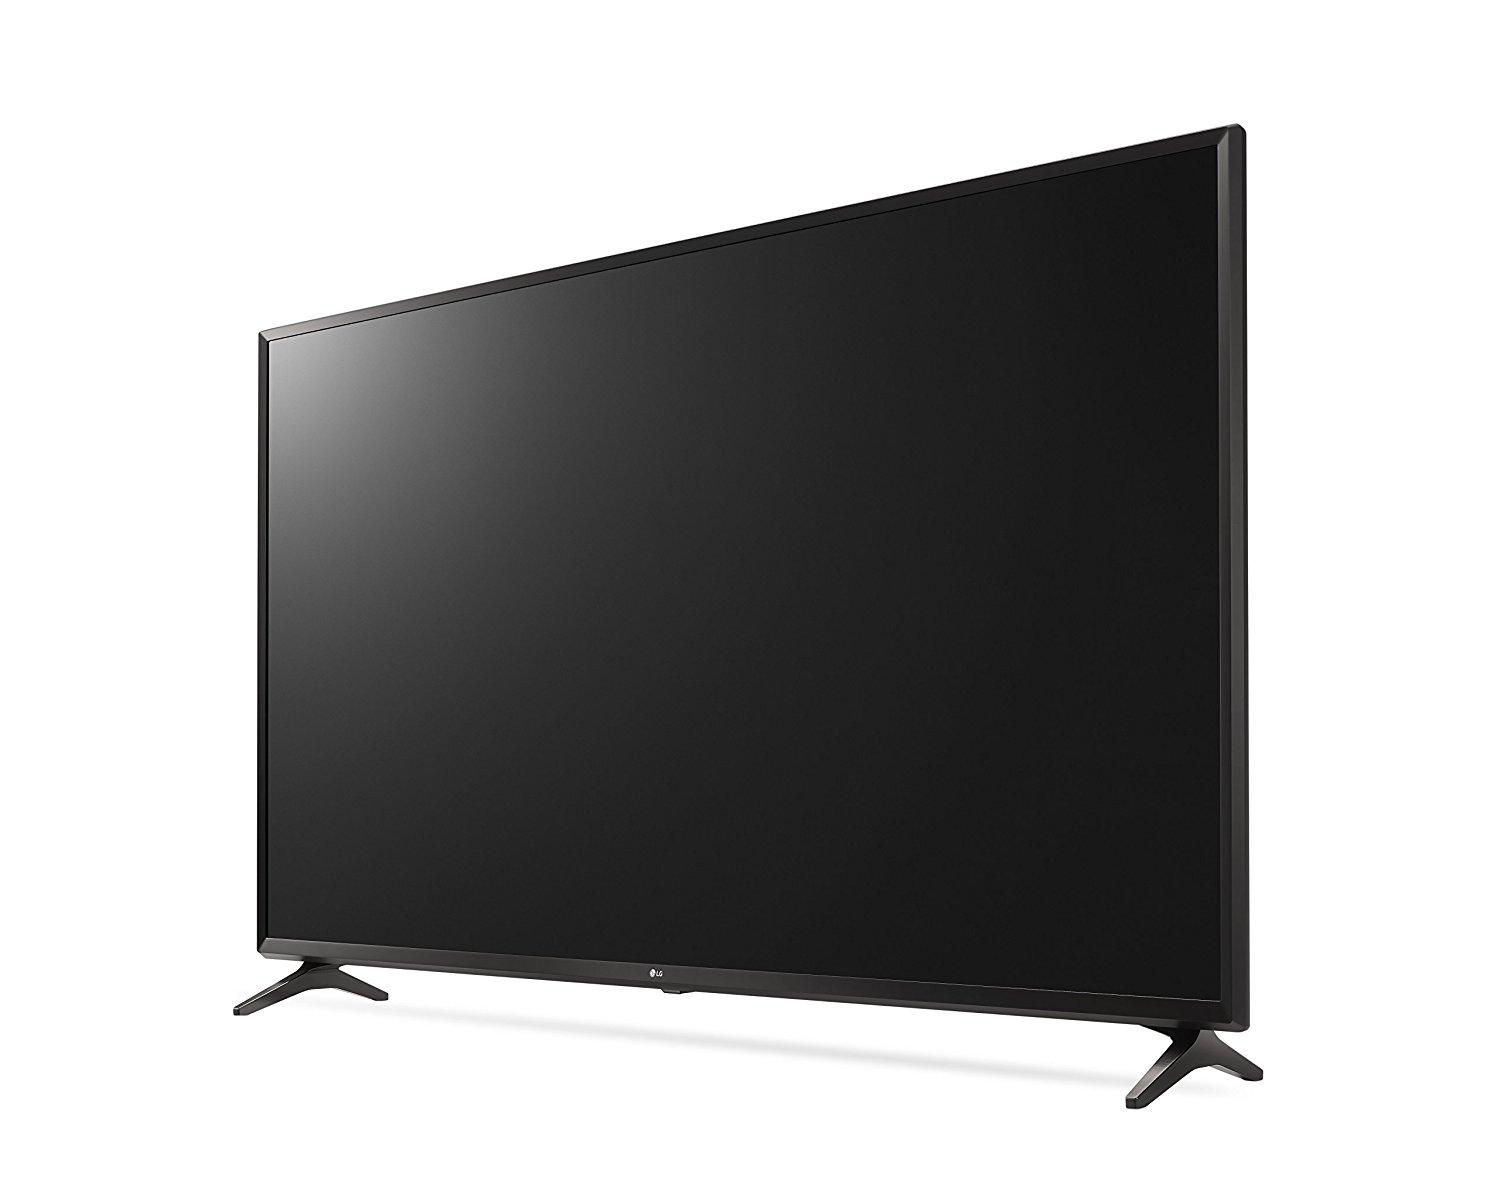 lg electronics 49uj6309 smart tv 49 zoll 123cm 4k uhd dvb t2 c s neu ebay. Black Bedroom Furniture Sets. Home Design Ideas